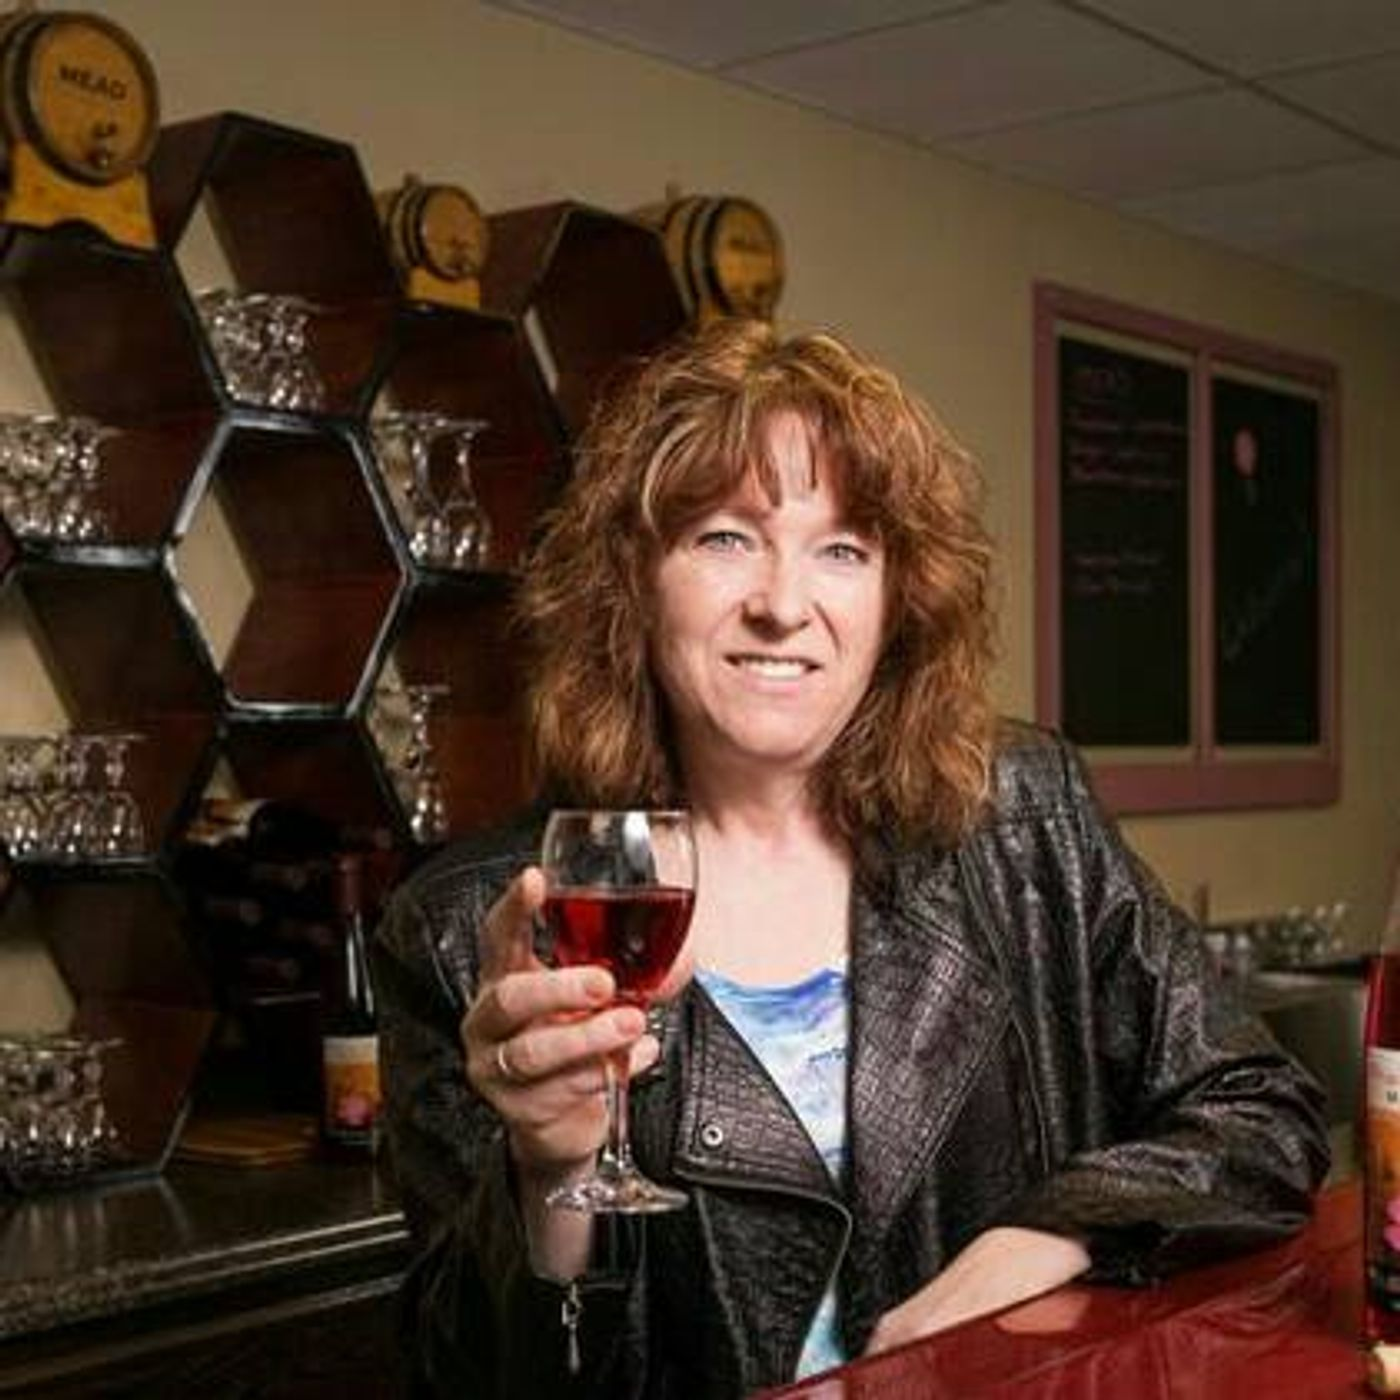 9-1-20 Susan Ruud - Midwest Mead and Running a Meadery in Time of COVID